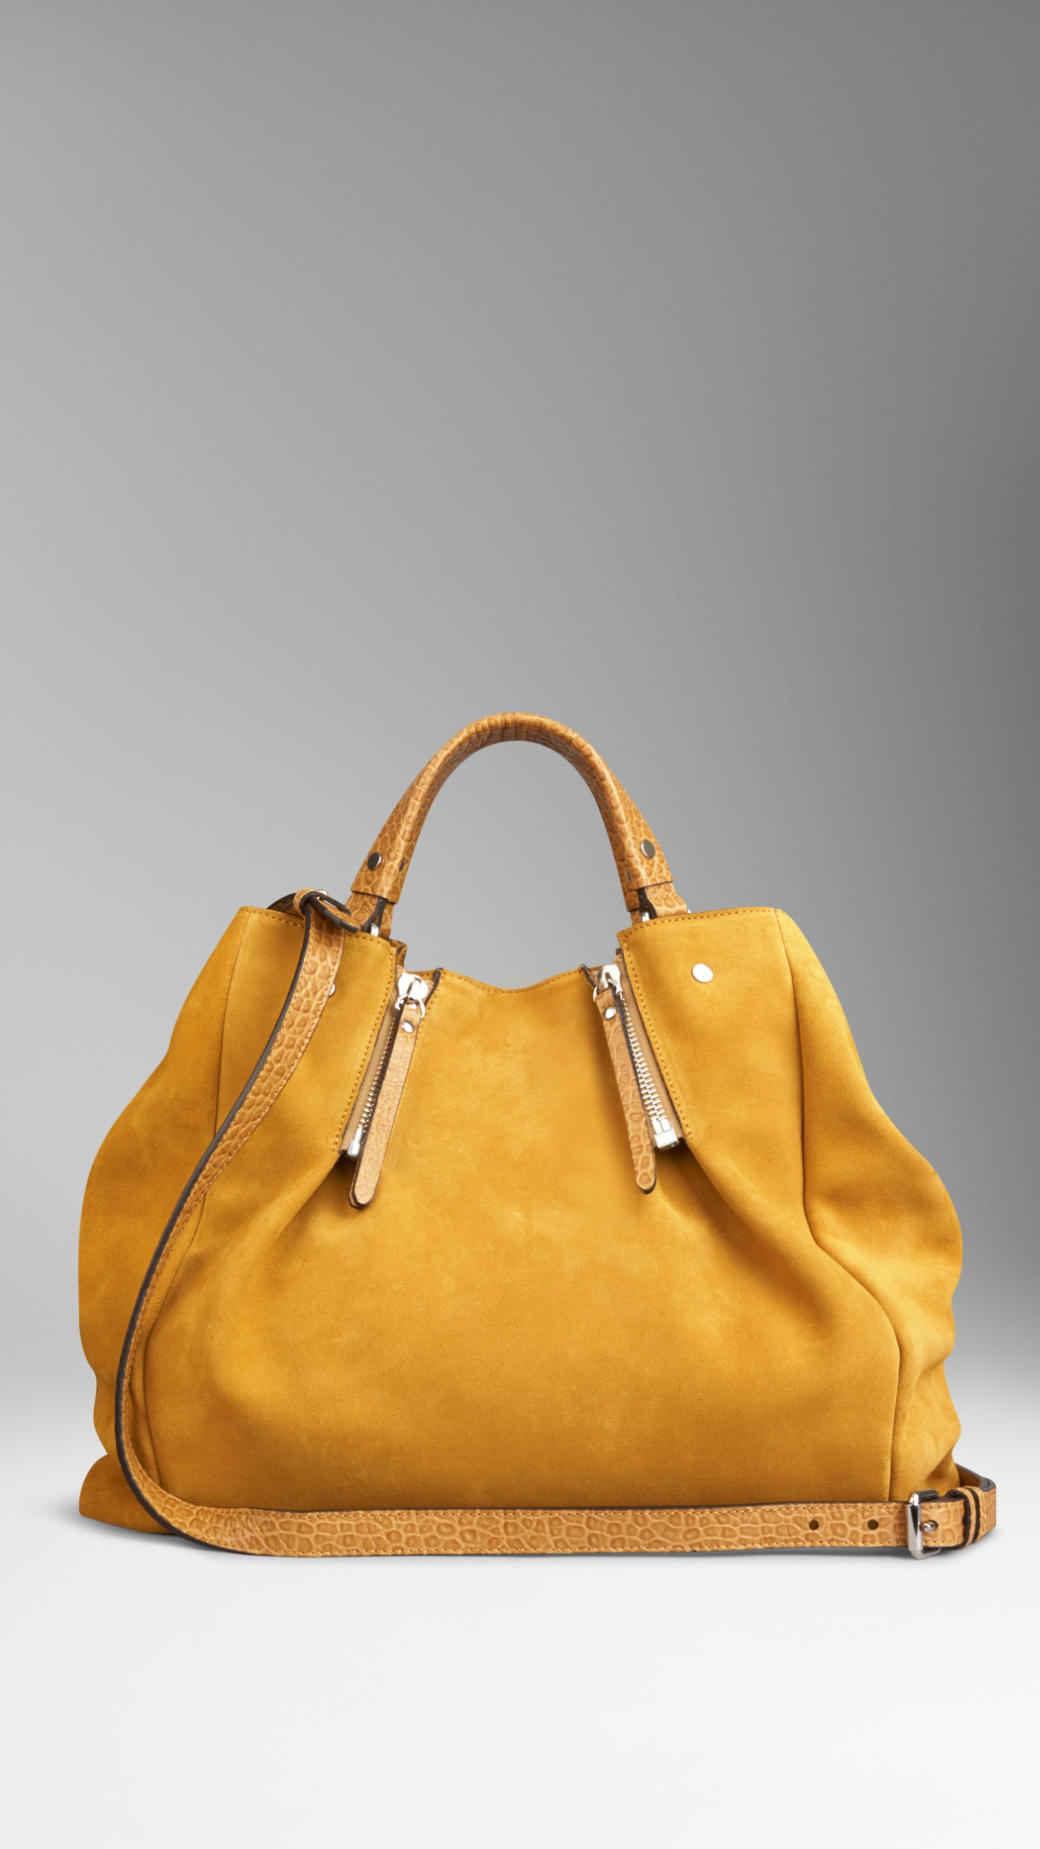 d2d441a366e4 Lyst - Burberry Large Suede Tote Bag in Yellow